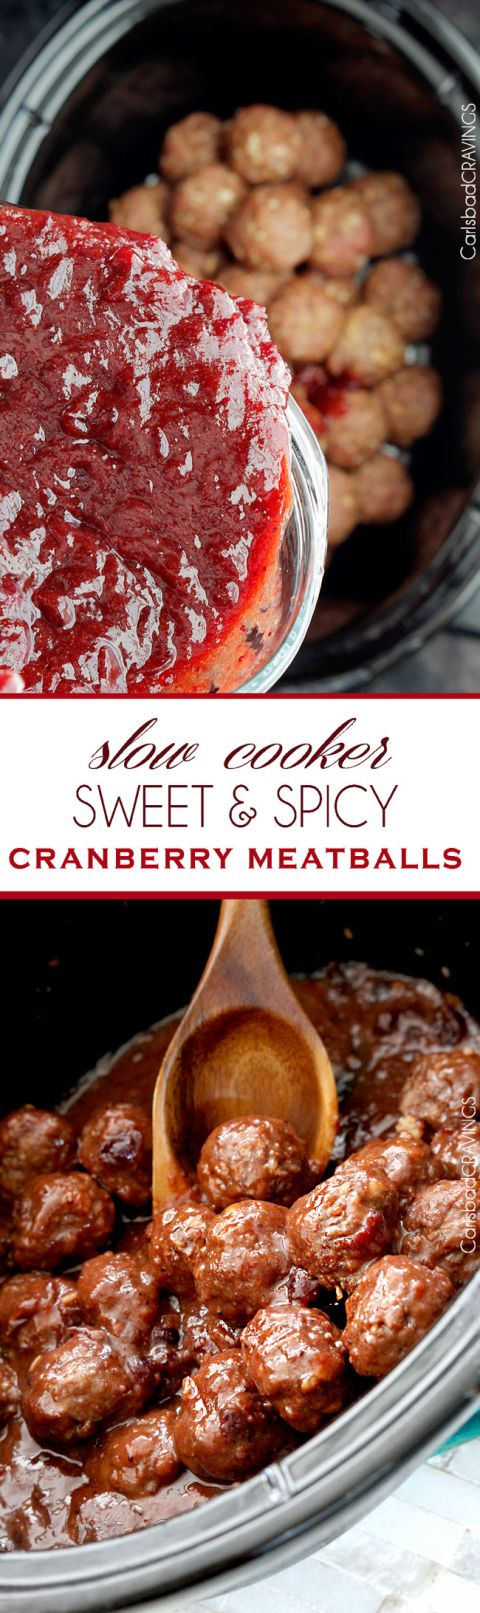 Sweet and spicy cranberry meatballs slow cooker recipe for Meatball appetizer recipe crockpot